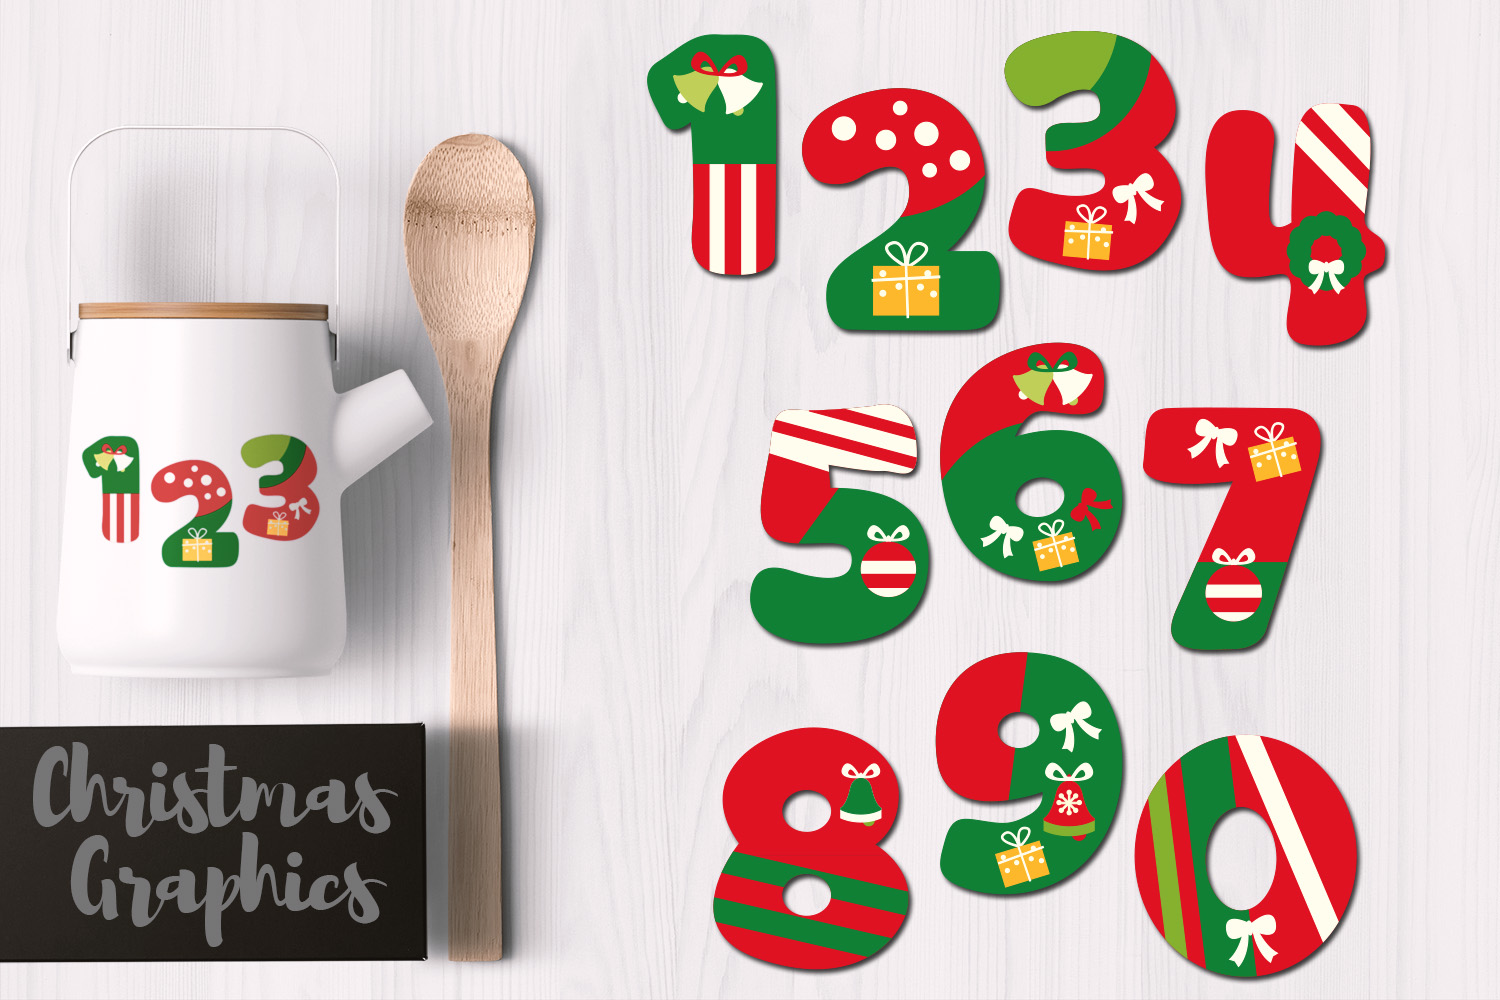 Christmas Numbers (Graphic) by Revidevi · Creative Fabrica